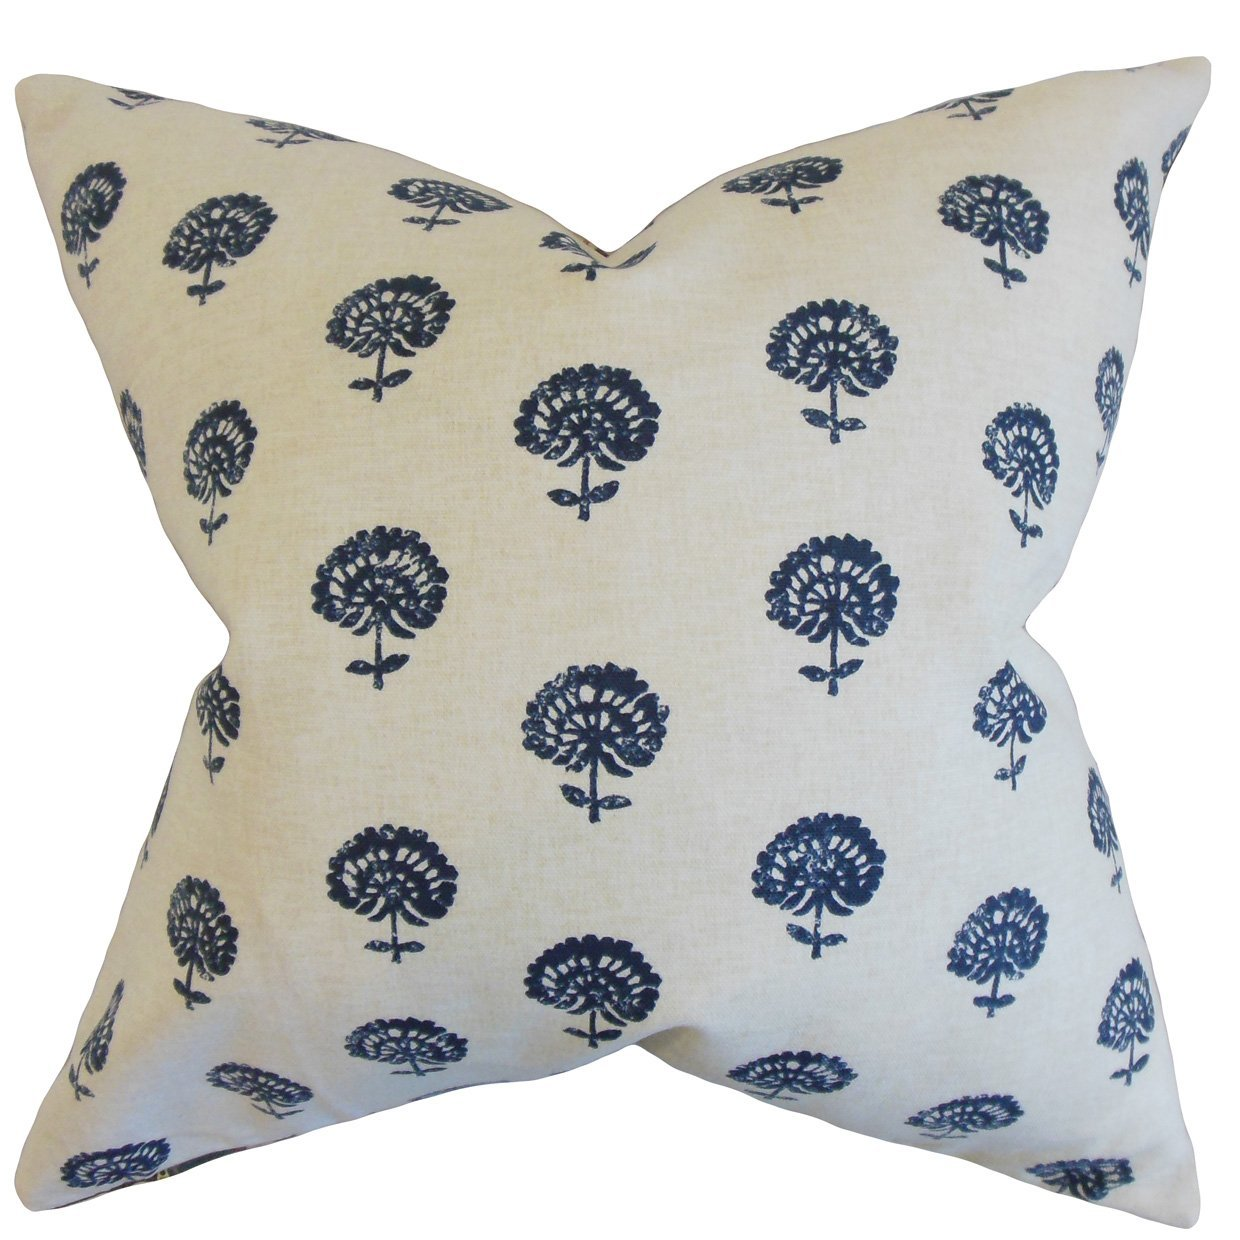 The Pillow Collection Londyn Floral Bedding Sham Indigo King//20 x 36